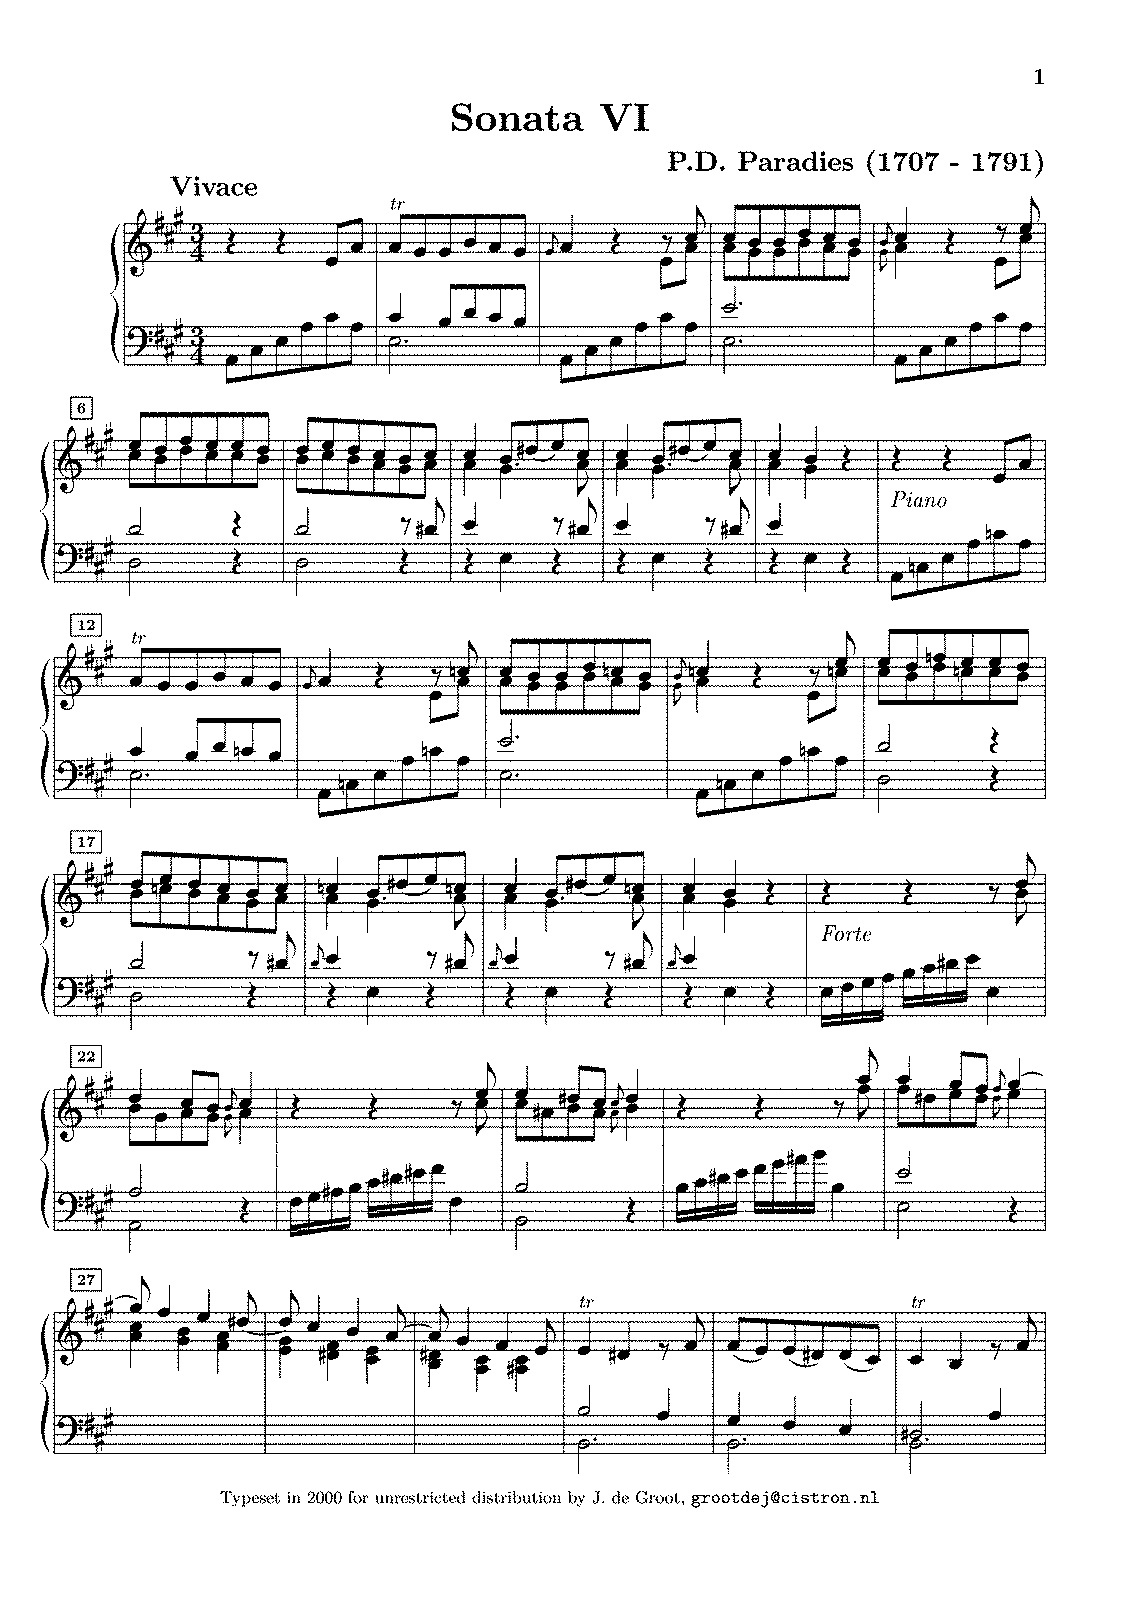 Paradies - Cembalo (Keyboard) Sonata No.6.pdf